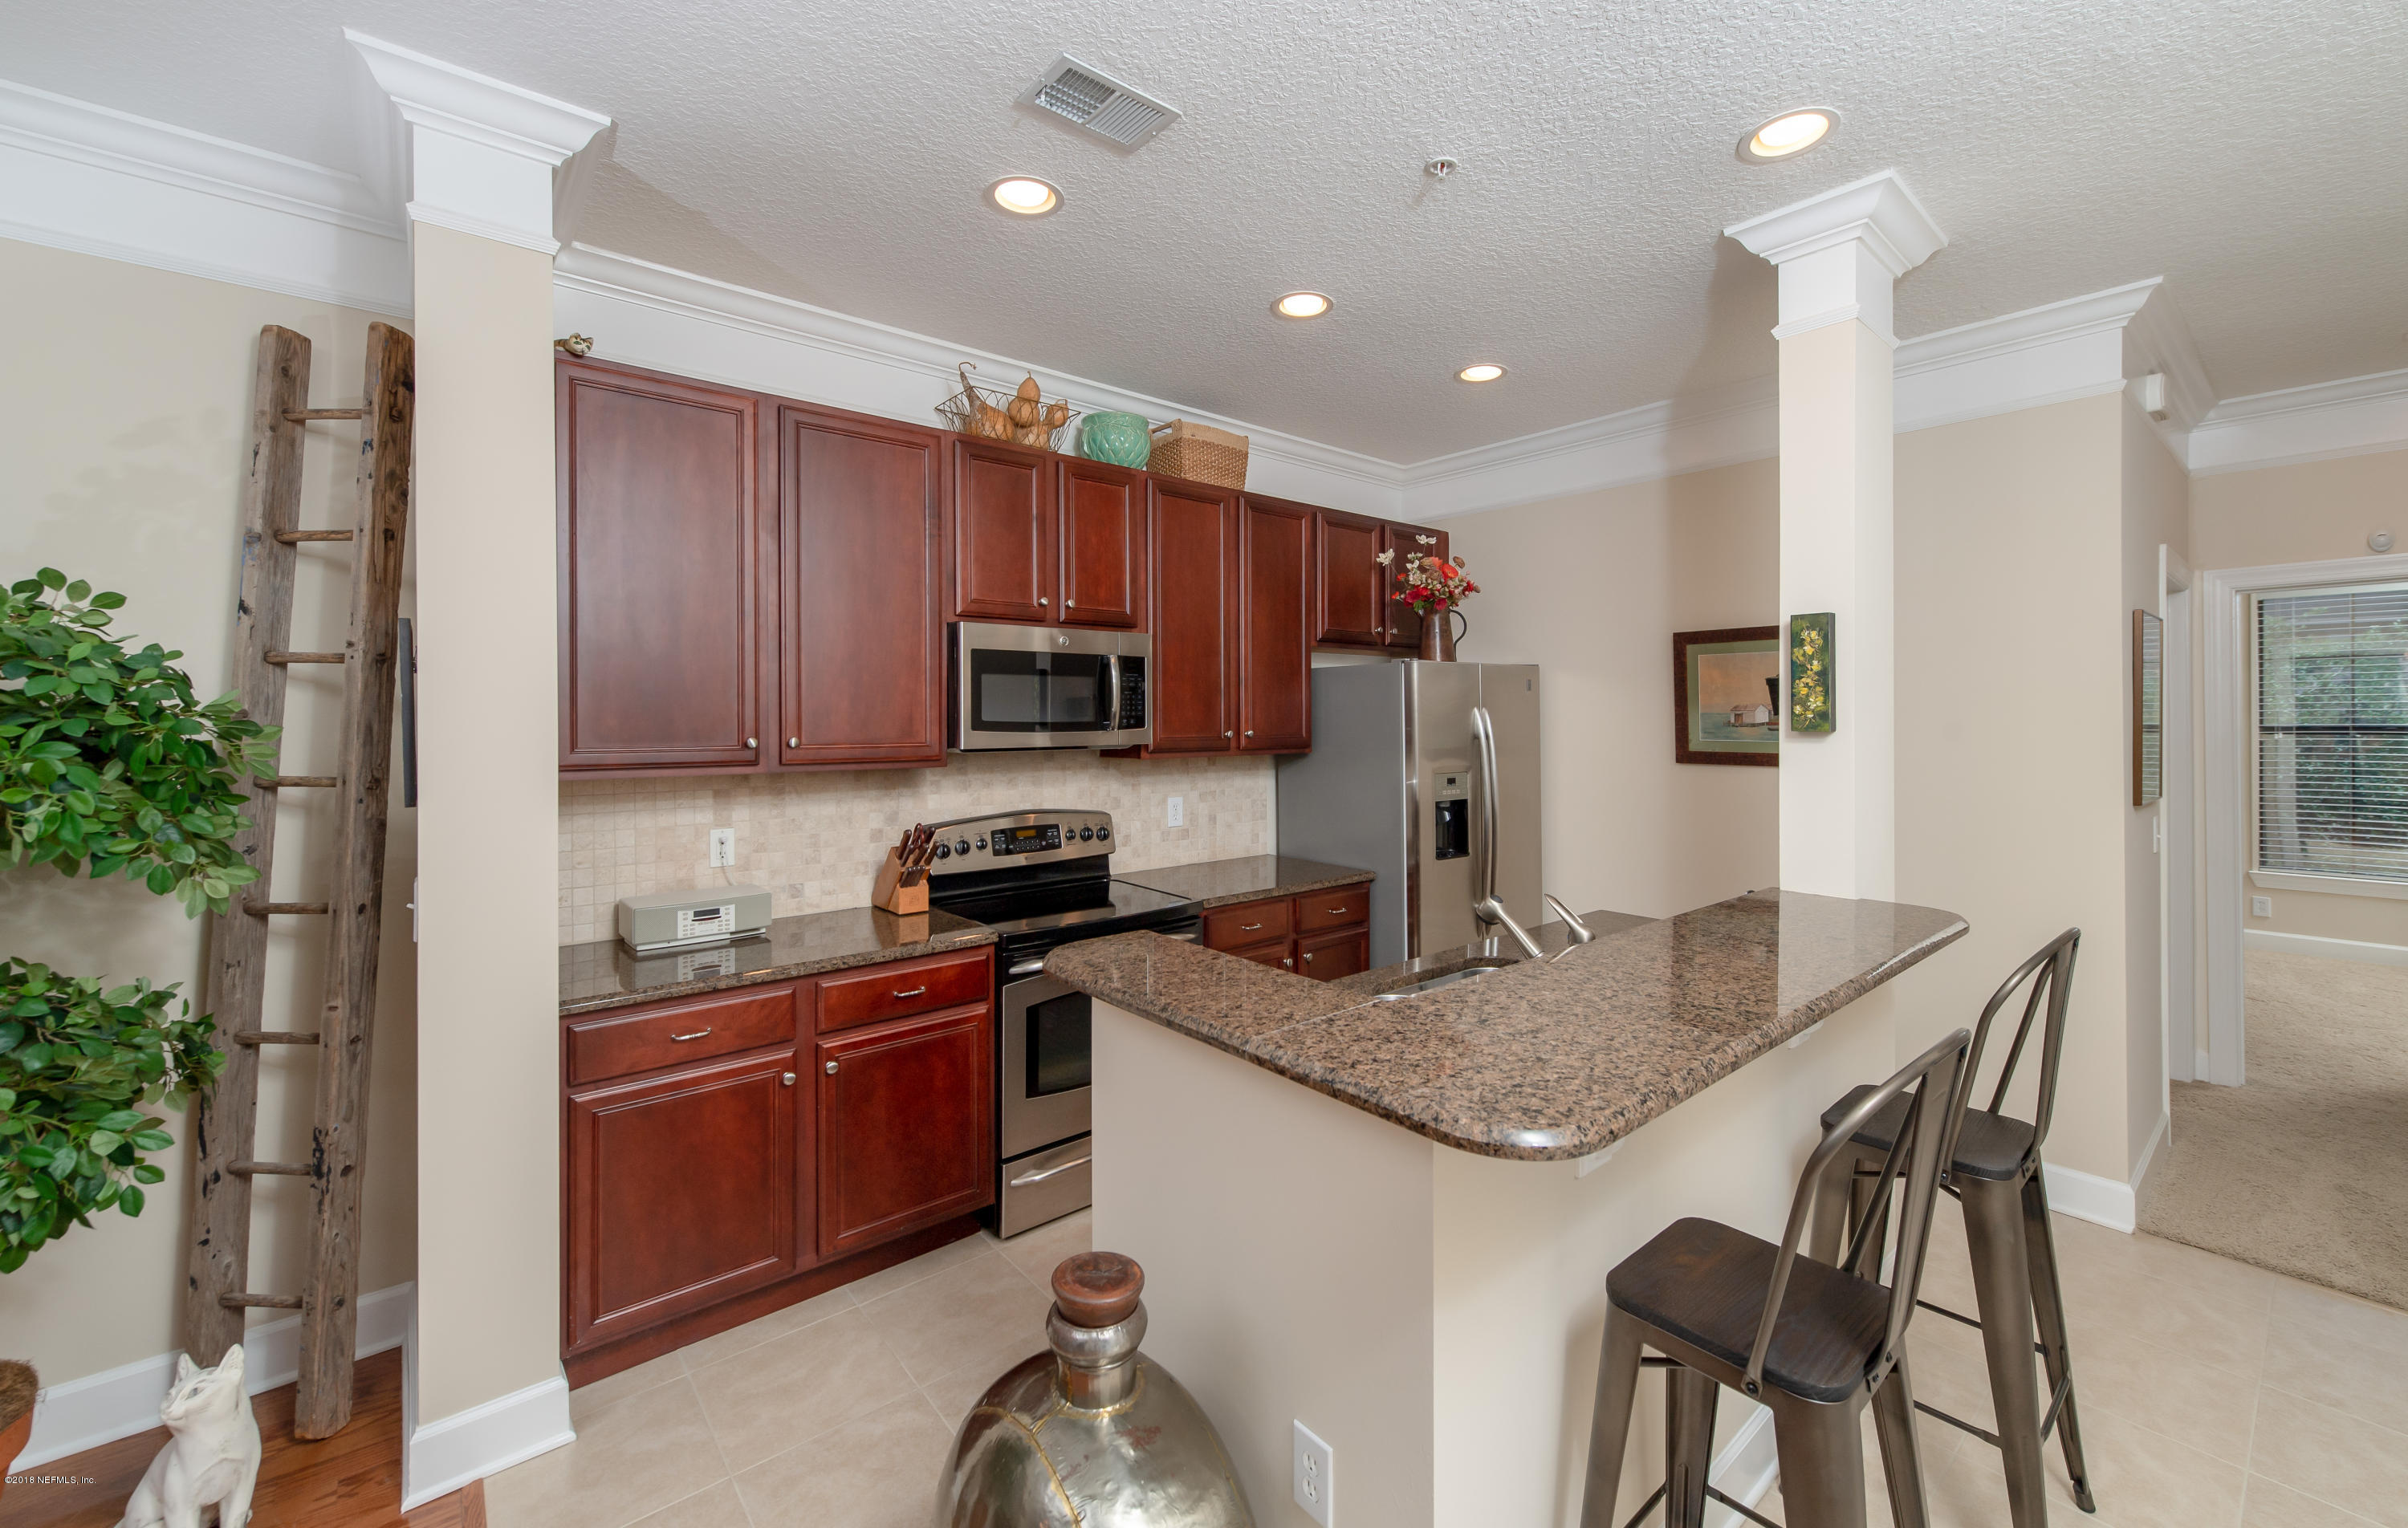 9823 TAPESTRY PARK, JACKSONVILLE, FLORIDA 32246, 3 Bedrooms Bedrooms, ,3 BathroomsBathrooms,Residential - condos/townhomes,For sale,TAPESTRY PARK,951628